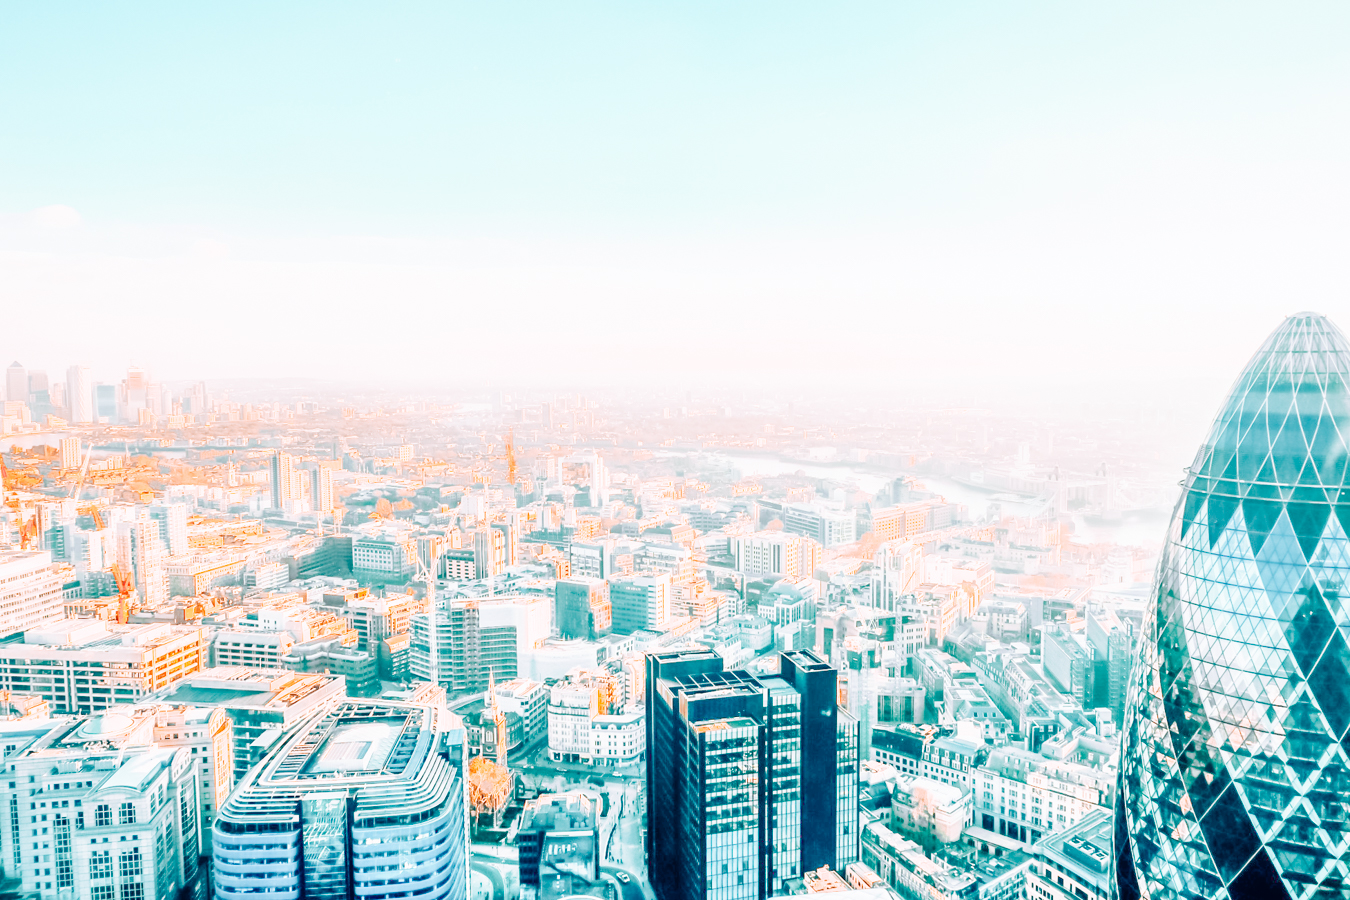 View of London from above